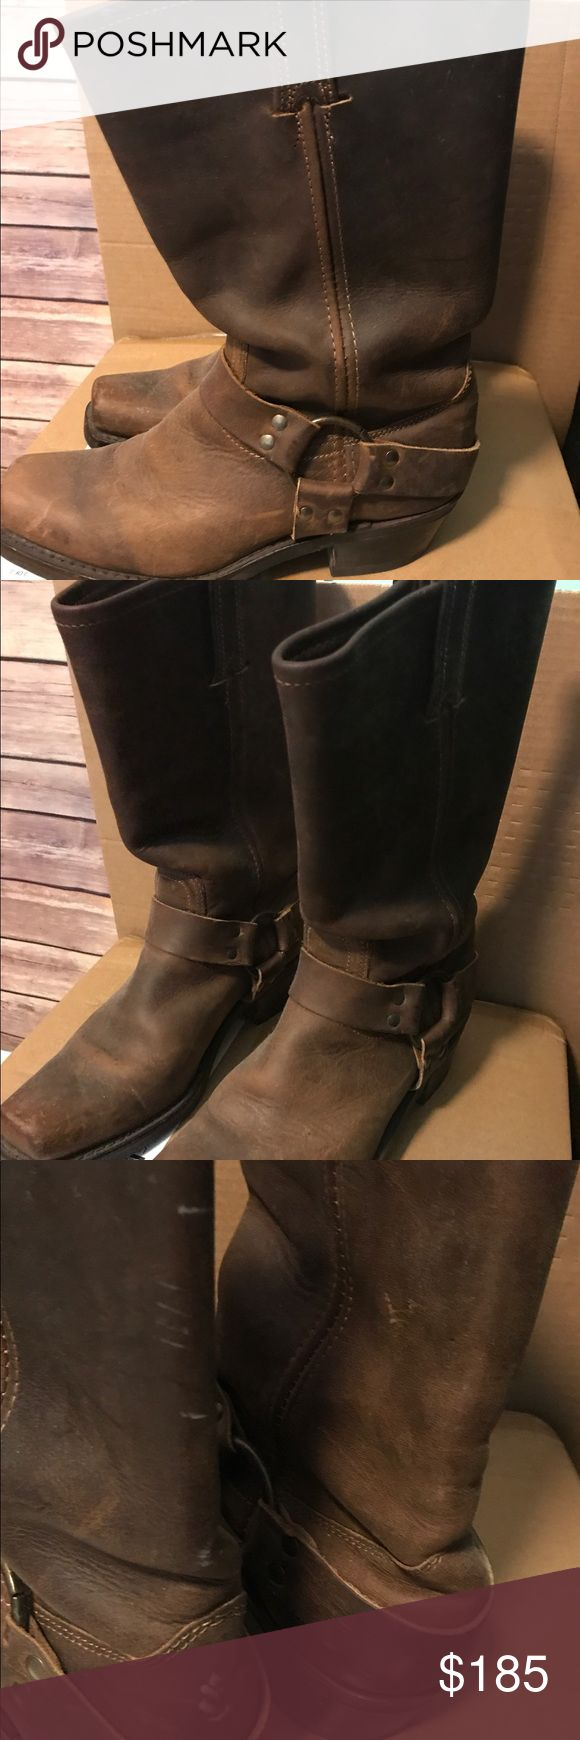 Frye harness boots 8 1/2 Frye harness boots 8 1/2. Good condition. Small scratches on the back see pic n Frye Shoes Combat & Moto Boots